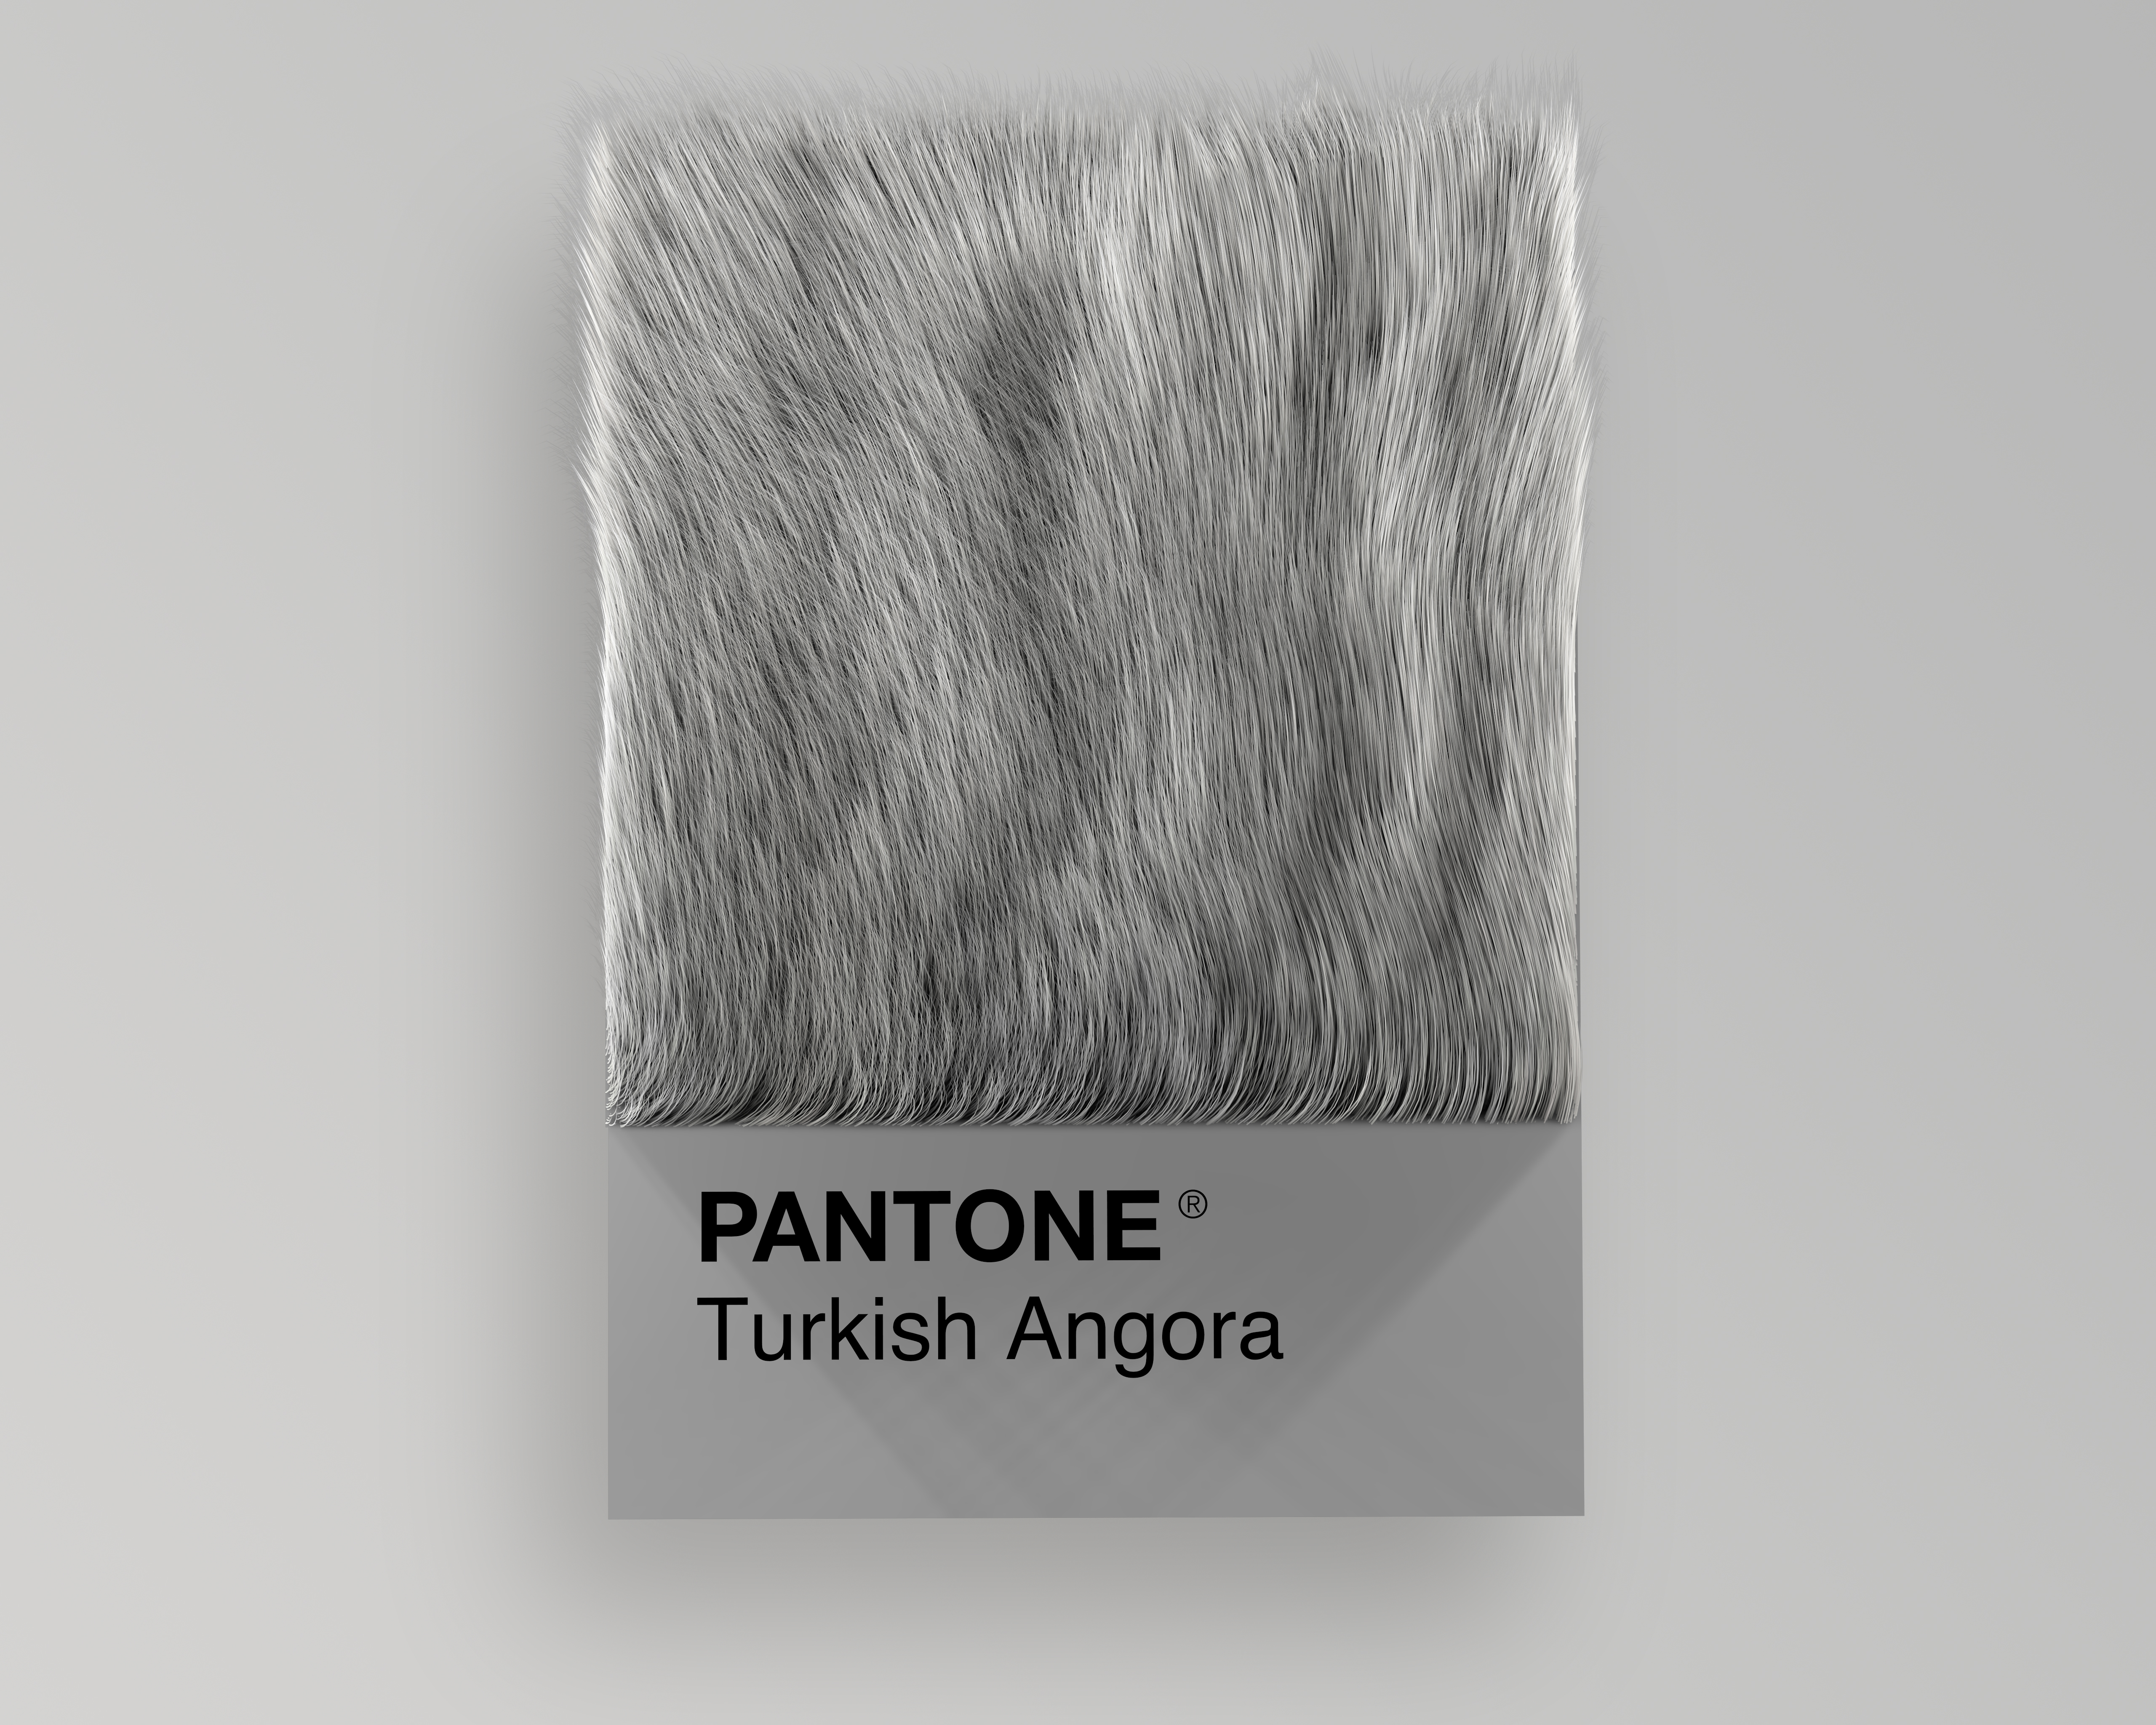 Alessio D'Amico - Cat breeds as Pantone | Collater.al 10